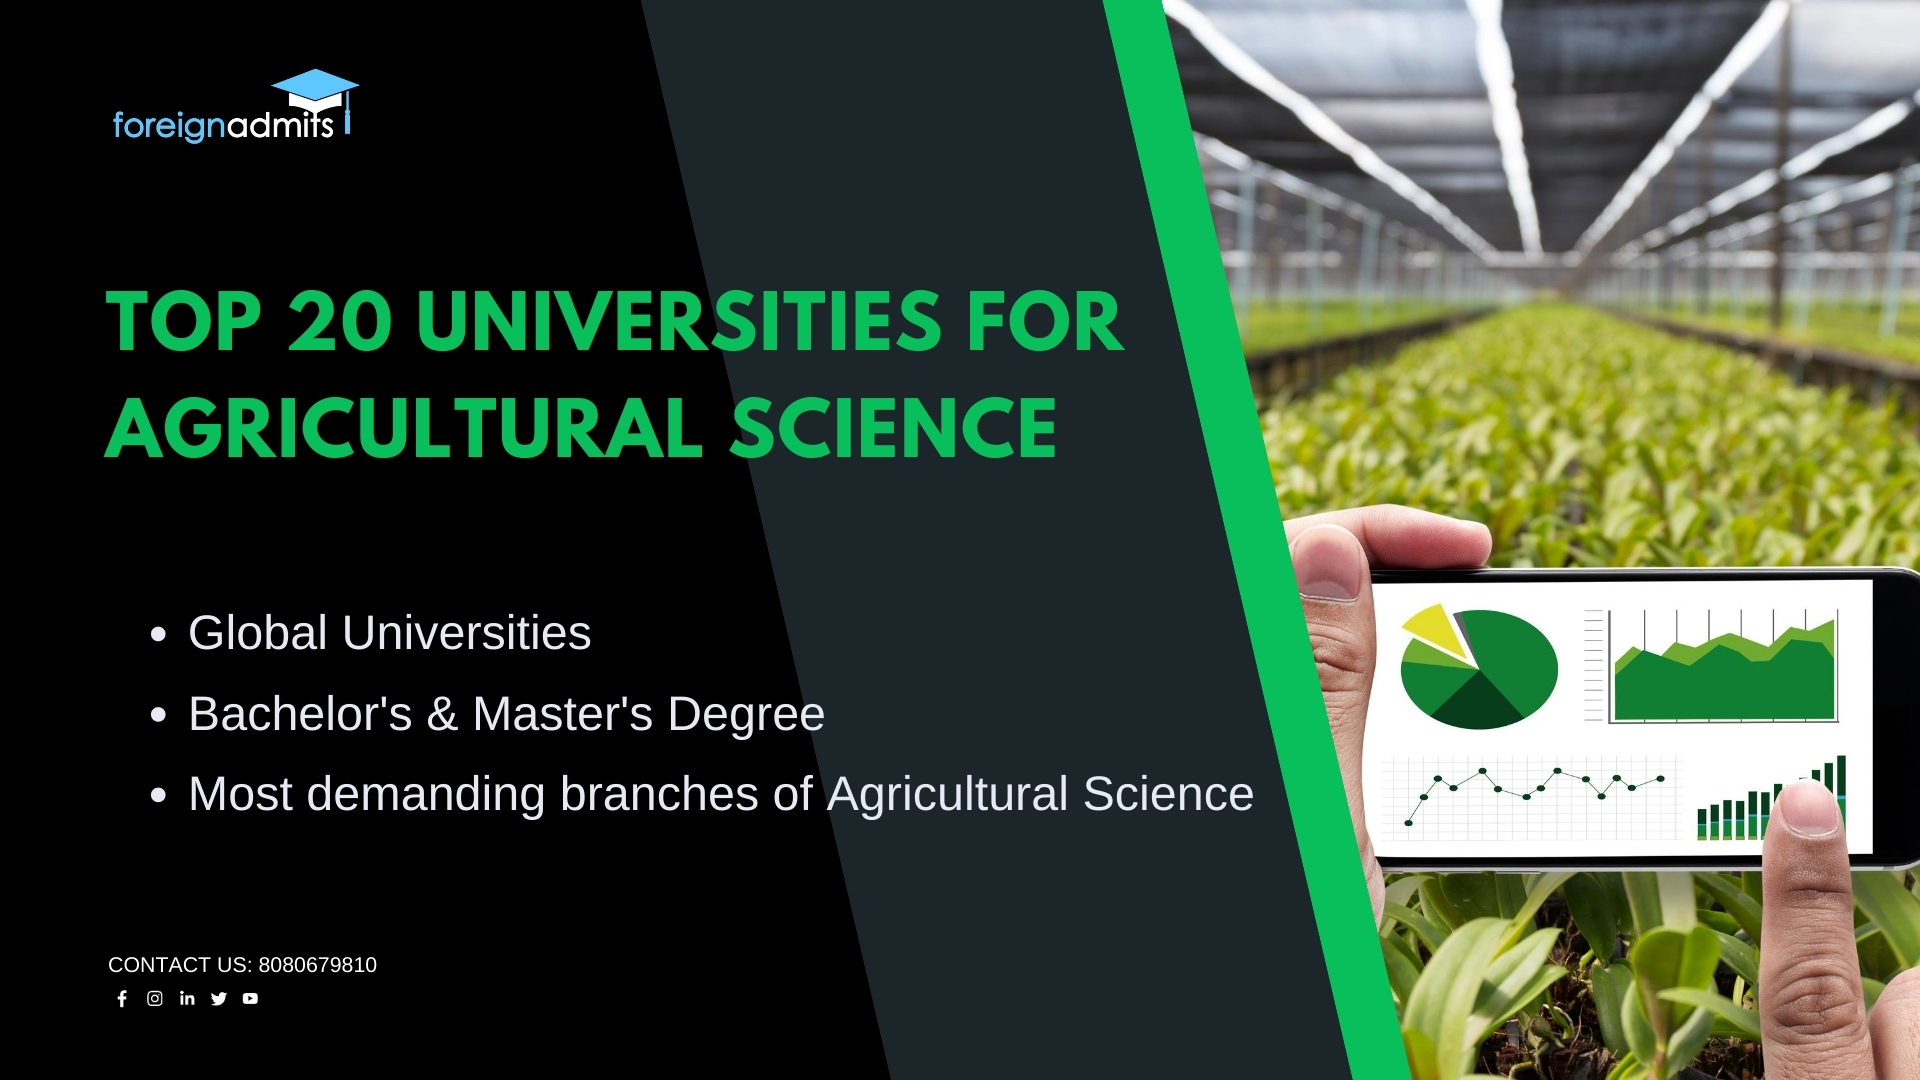 Top 20 Universities For Agricultural Science